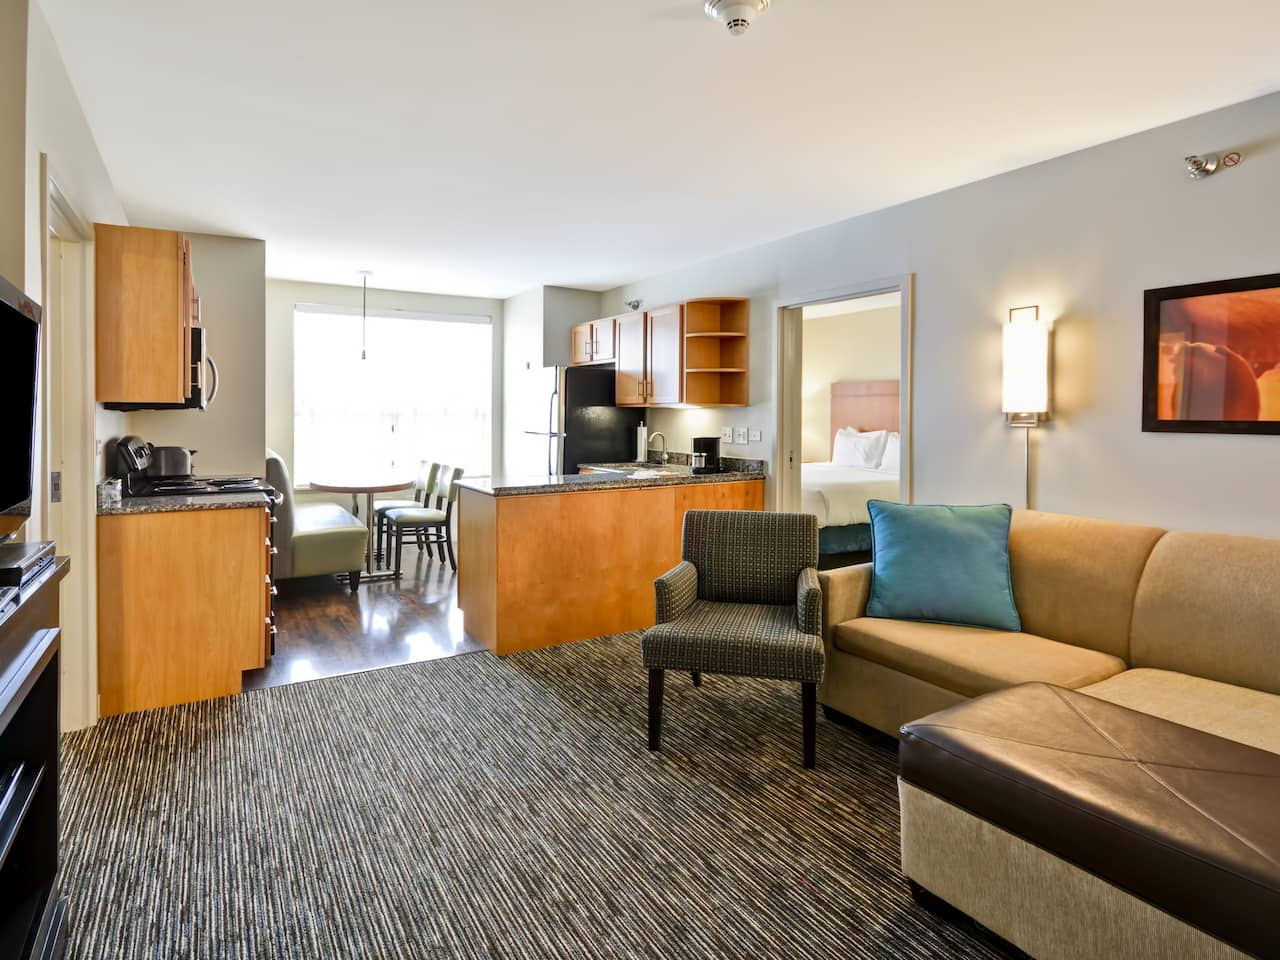 Hyatt House Living Room